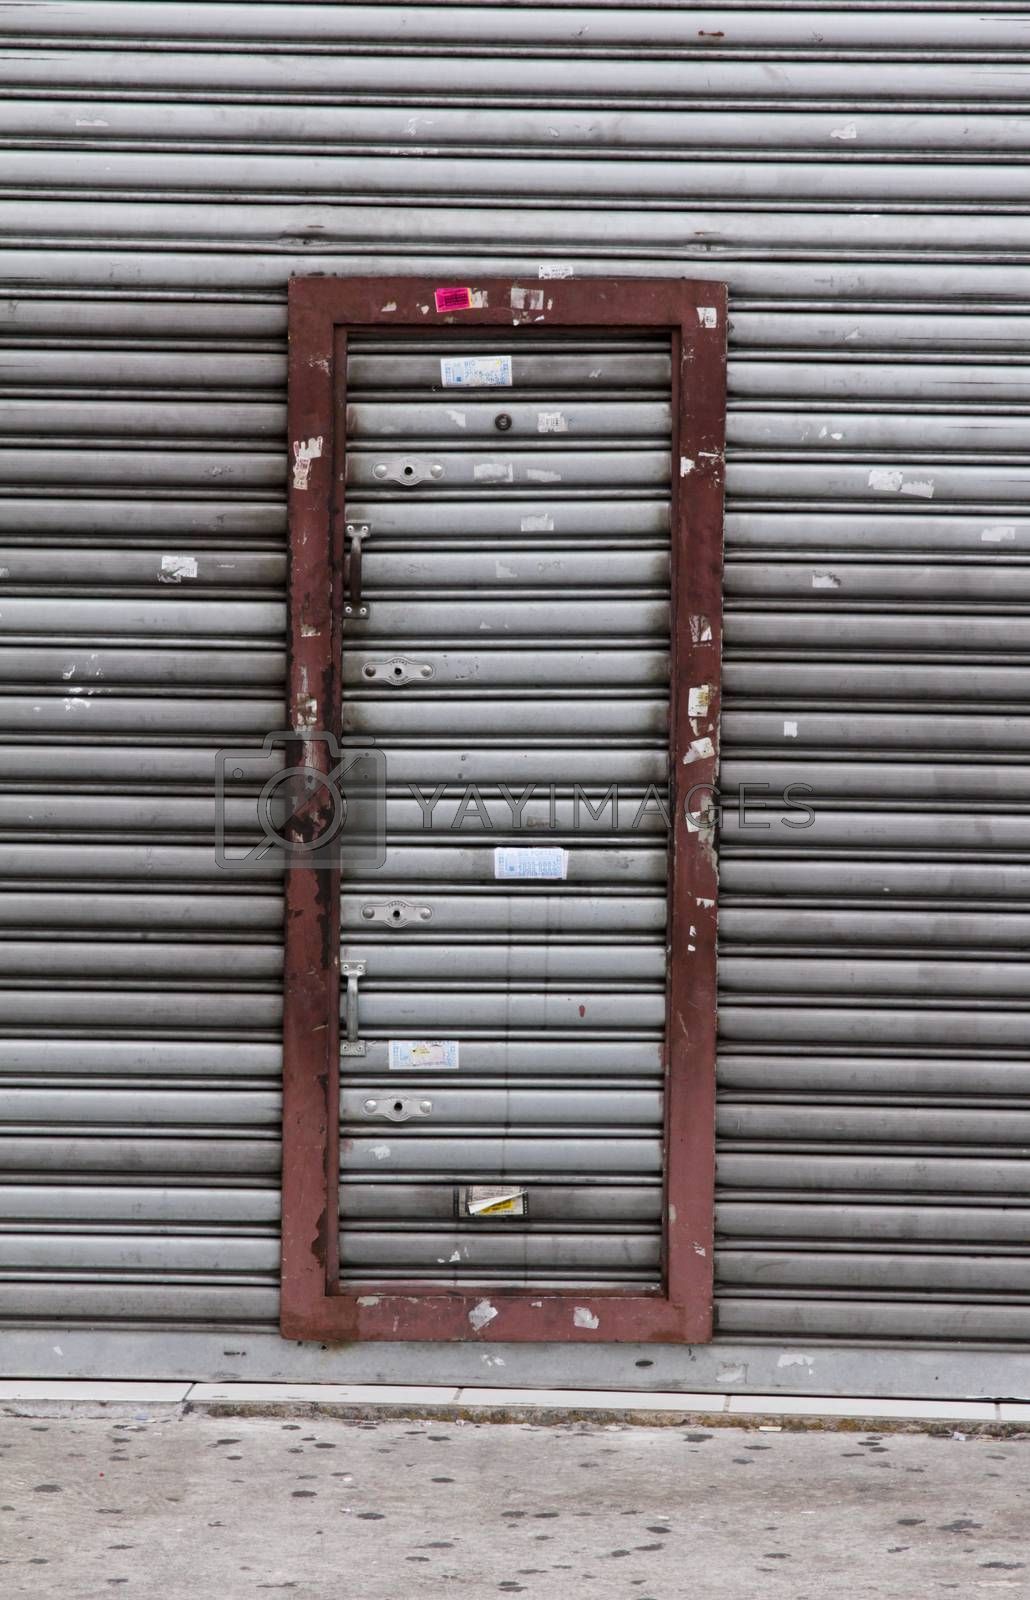 Grey iron door isolated with red framework